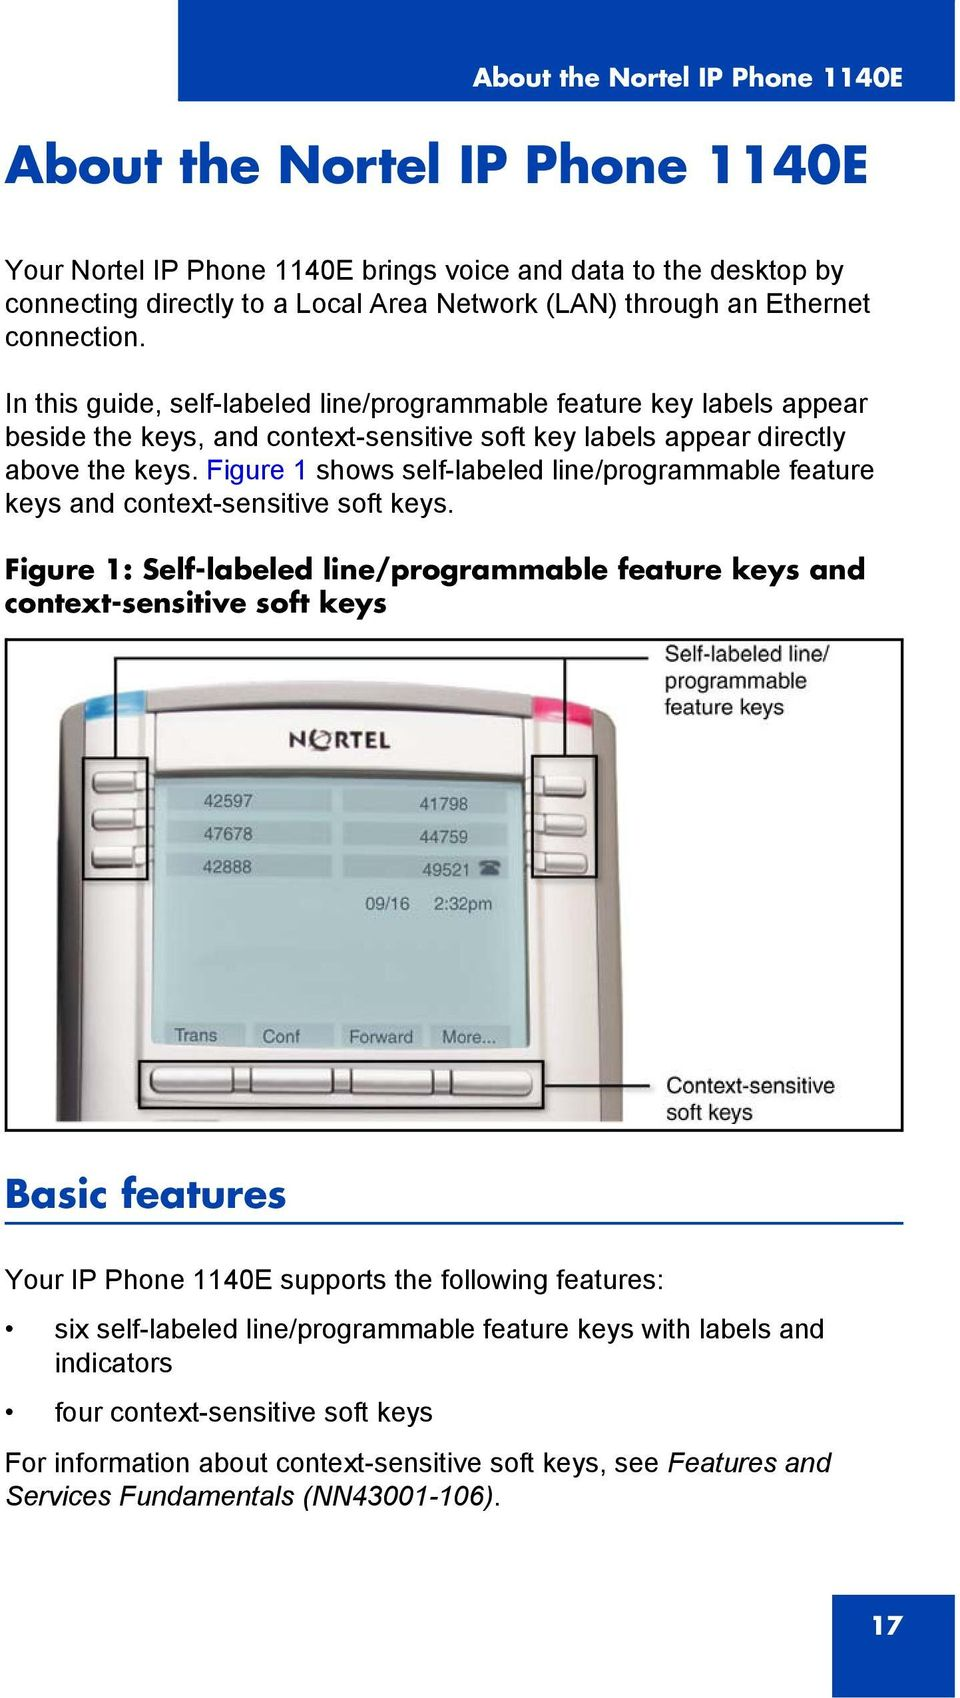 Figure 1 shows self-labeled line/programmable feature keys and context-sensitive soft keys.